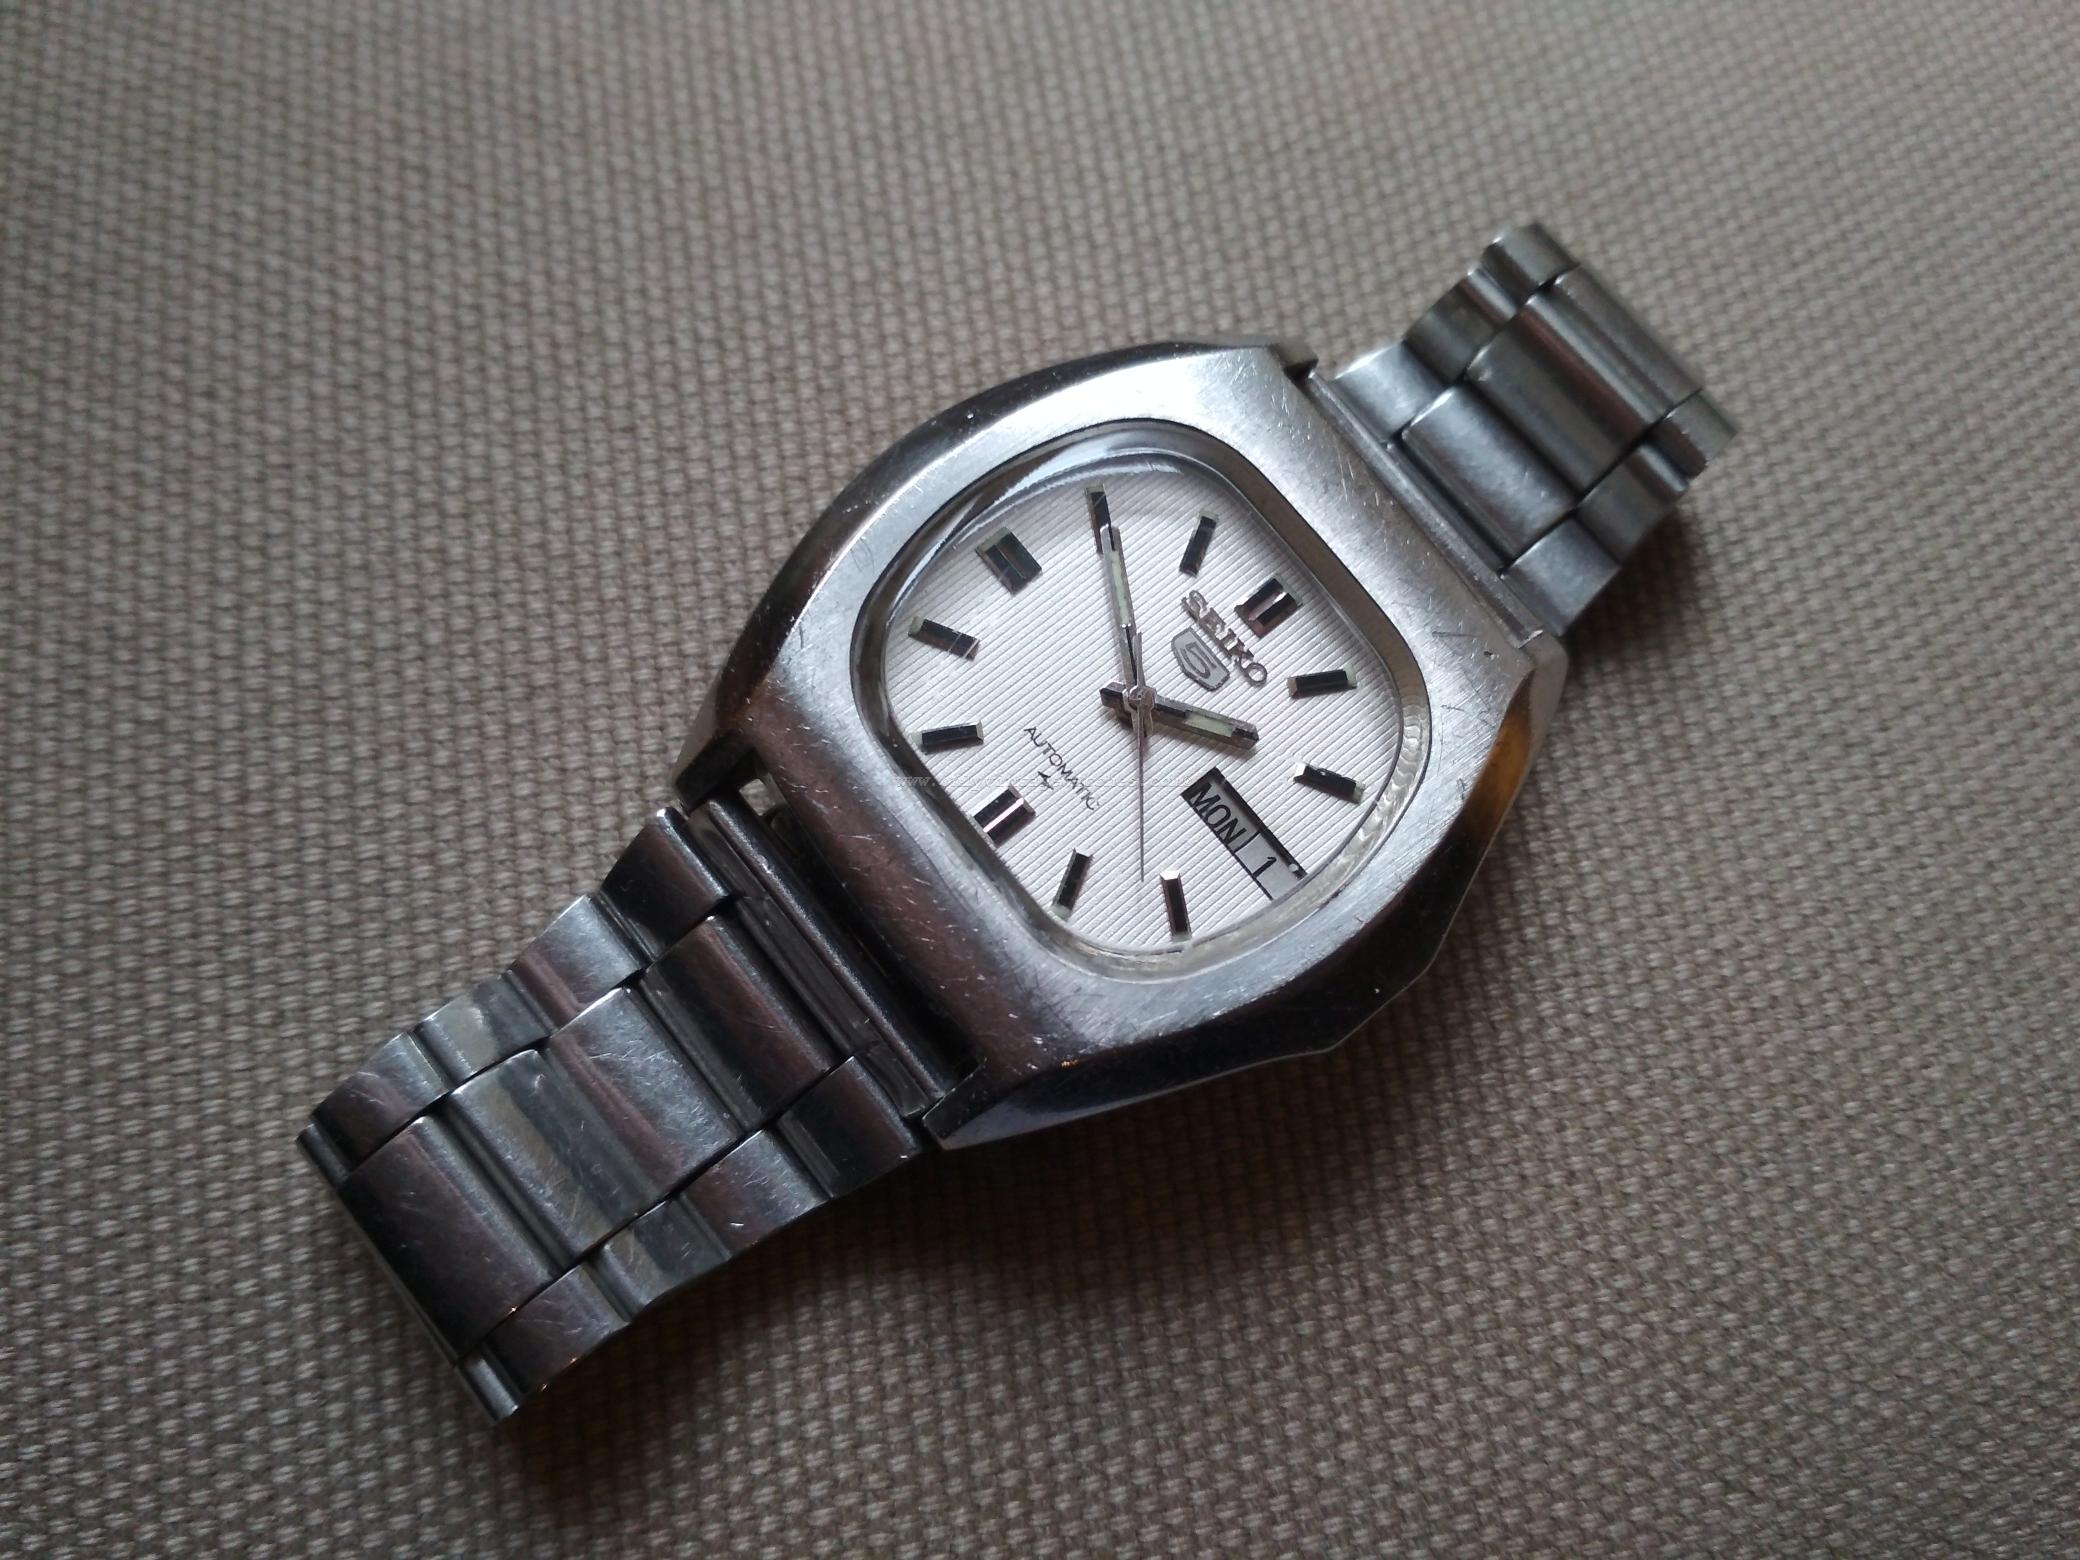 Vintage Seiko 7009-5010 Automatic Wristwatch